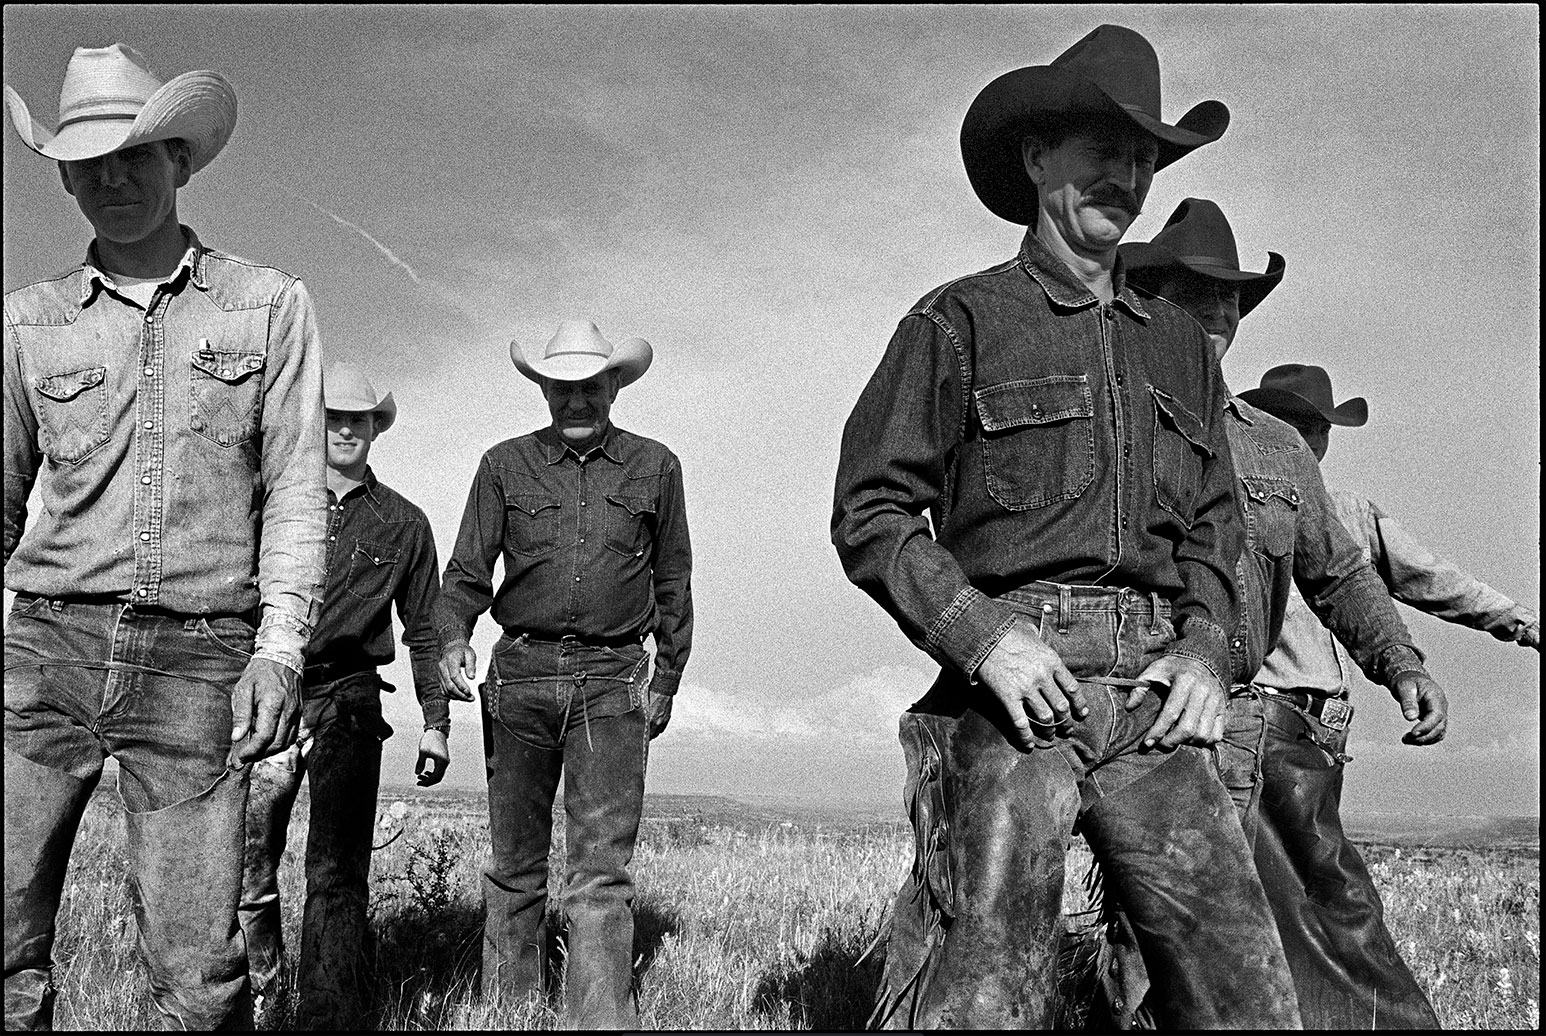 Cowboys Walking, J.R. Green Cattle Company, Schackelford County, Texas, 1997